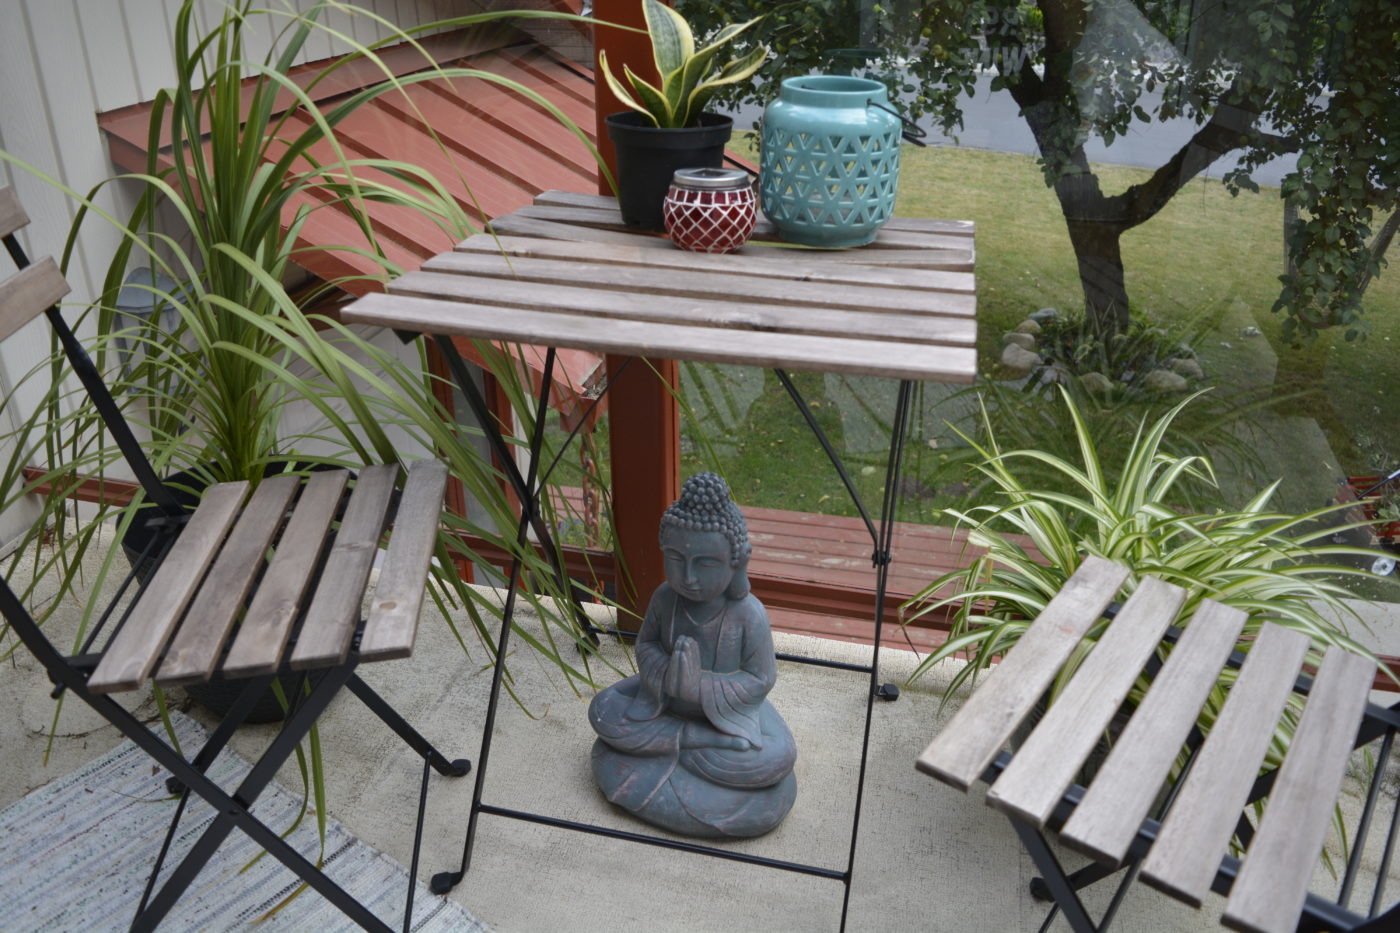 5 easy steps to creating your backyard mama oasis no matter how small your space